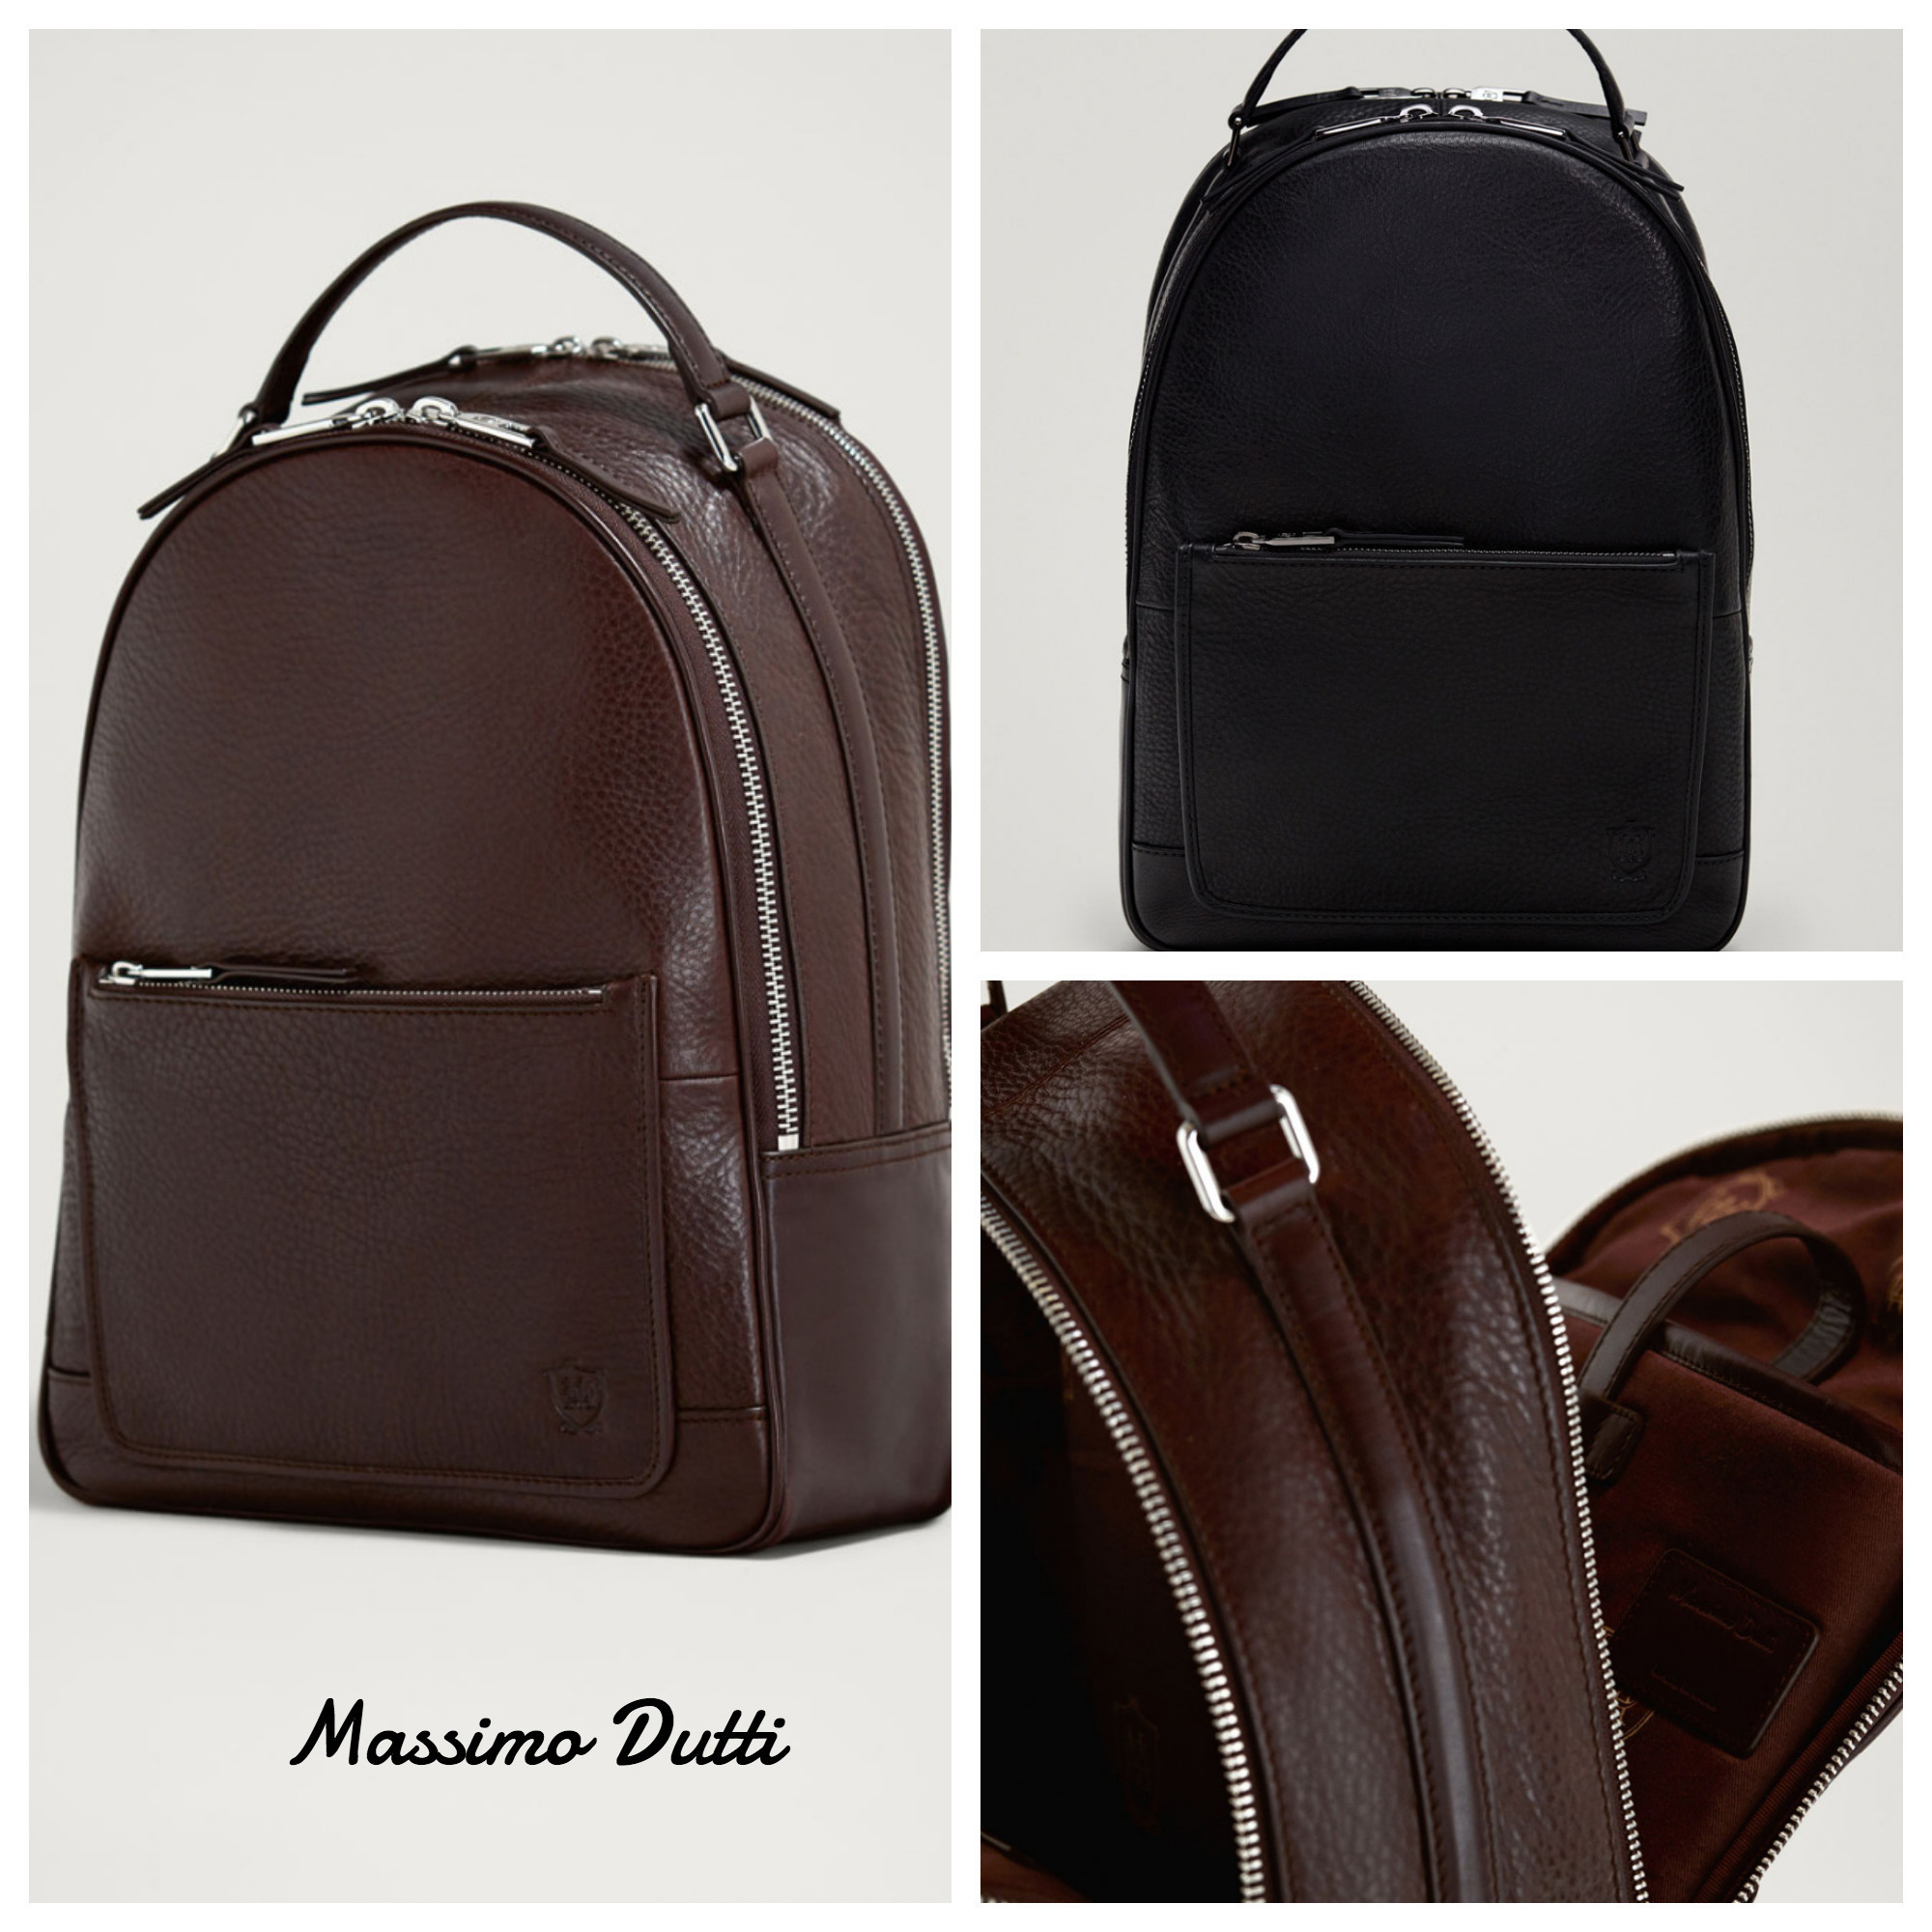 Massimo Dutti Men s Bags  Shop Online in US   BUYMA d2209db026f9